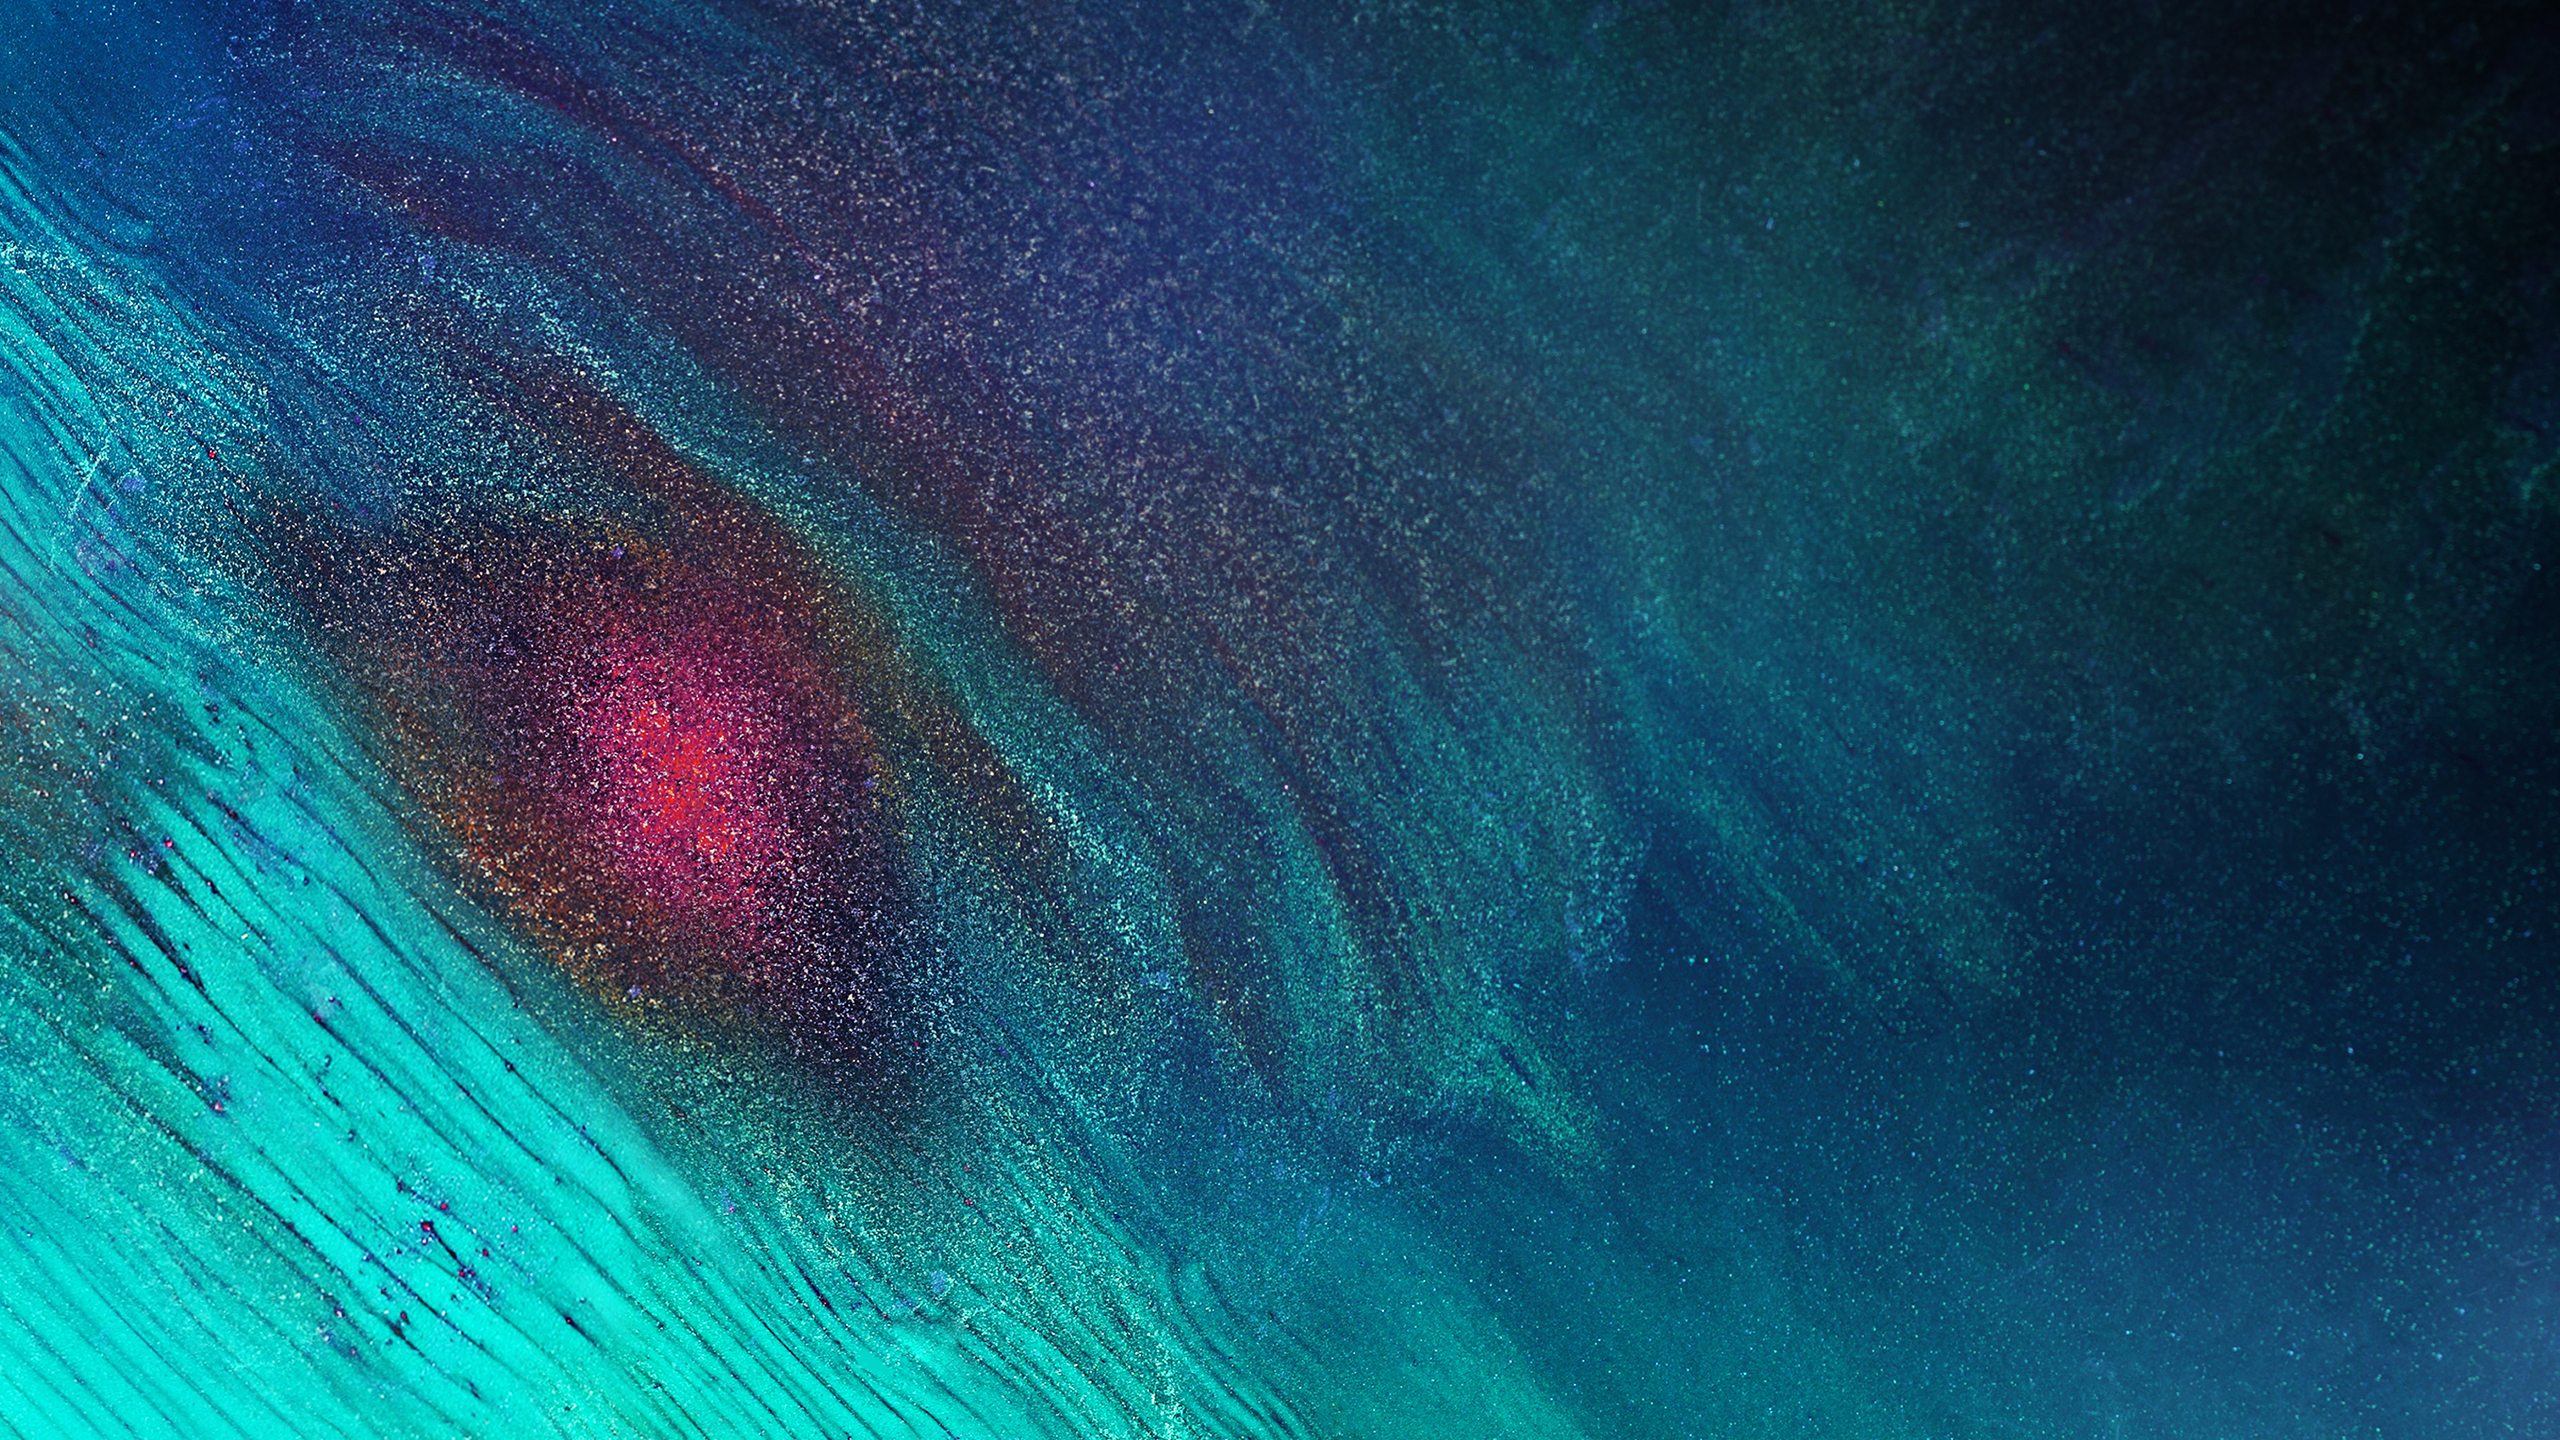 2560x1440 Samsung Galaxy S10 2019 1440p Resolution Wallpaper Hd Abstract 4k Wallpapers Images Photos And Background